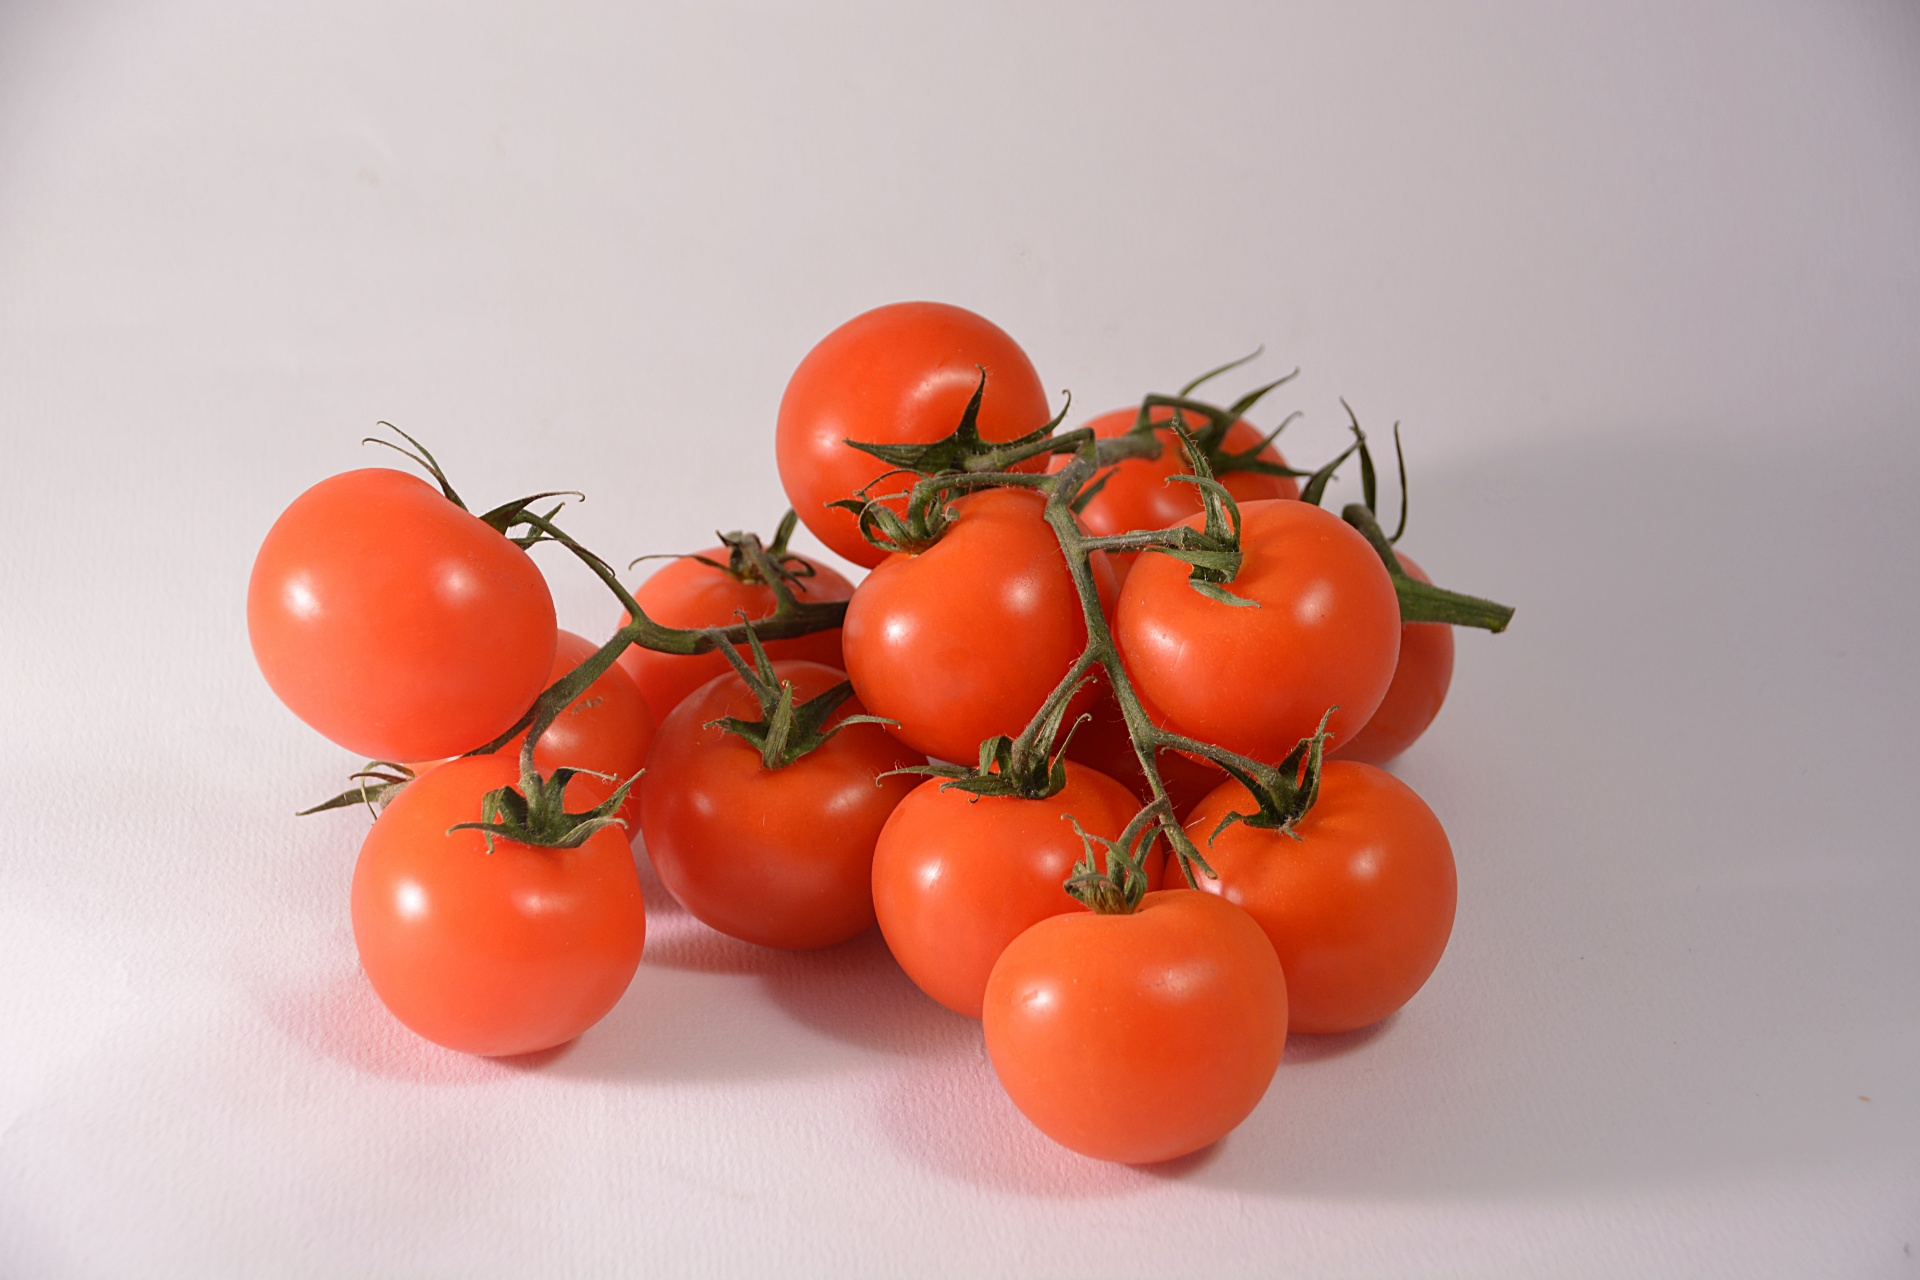 Difference Between Grape Tomatoes and Cherry Tomatoes